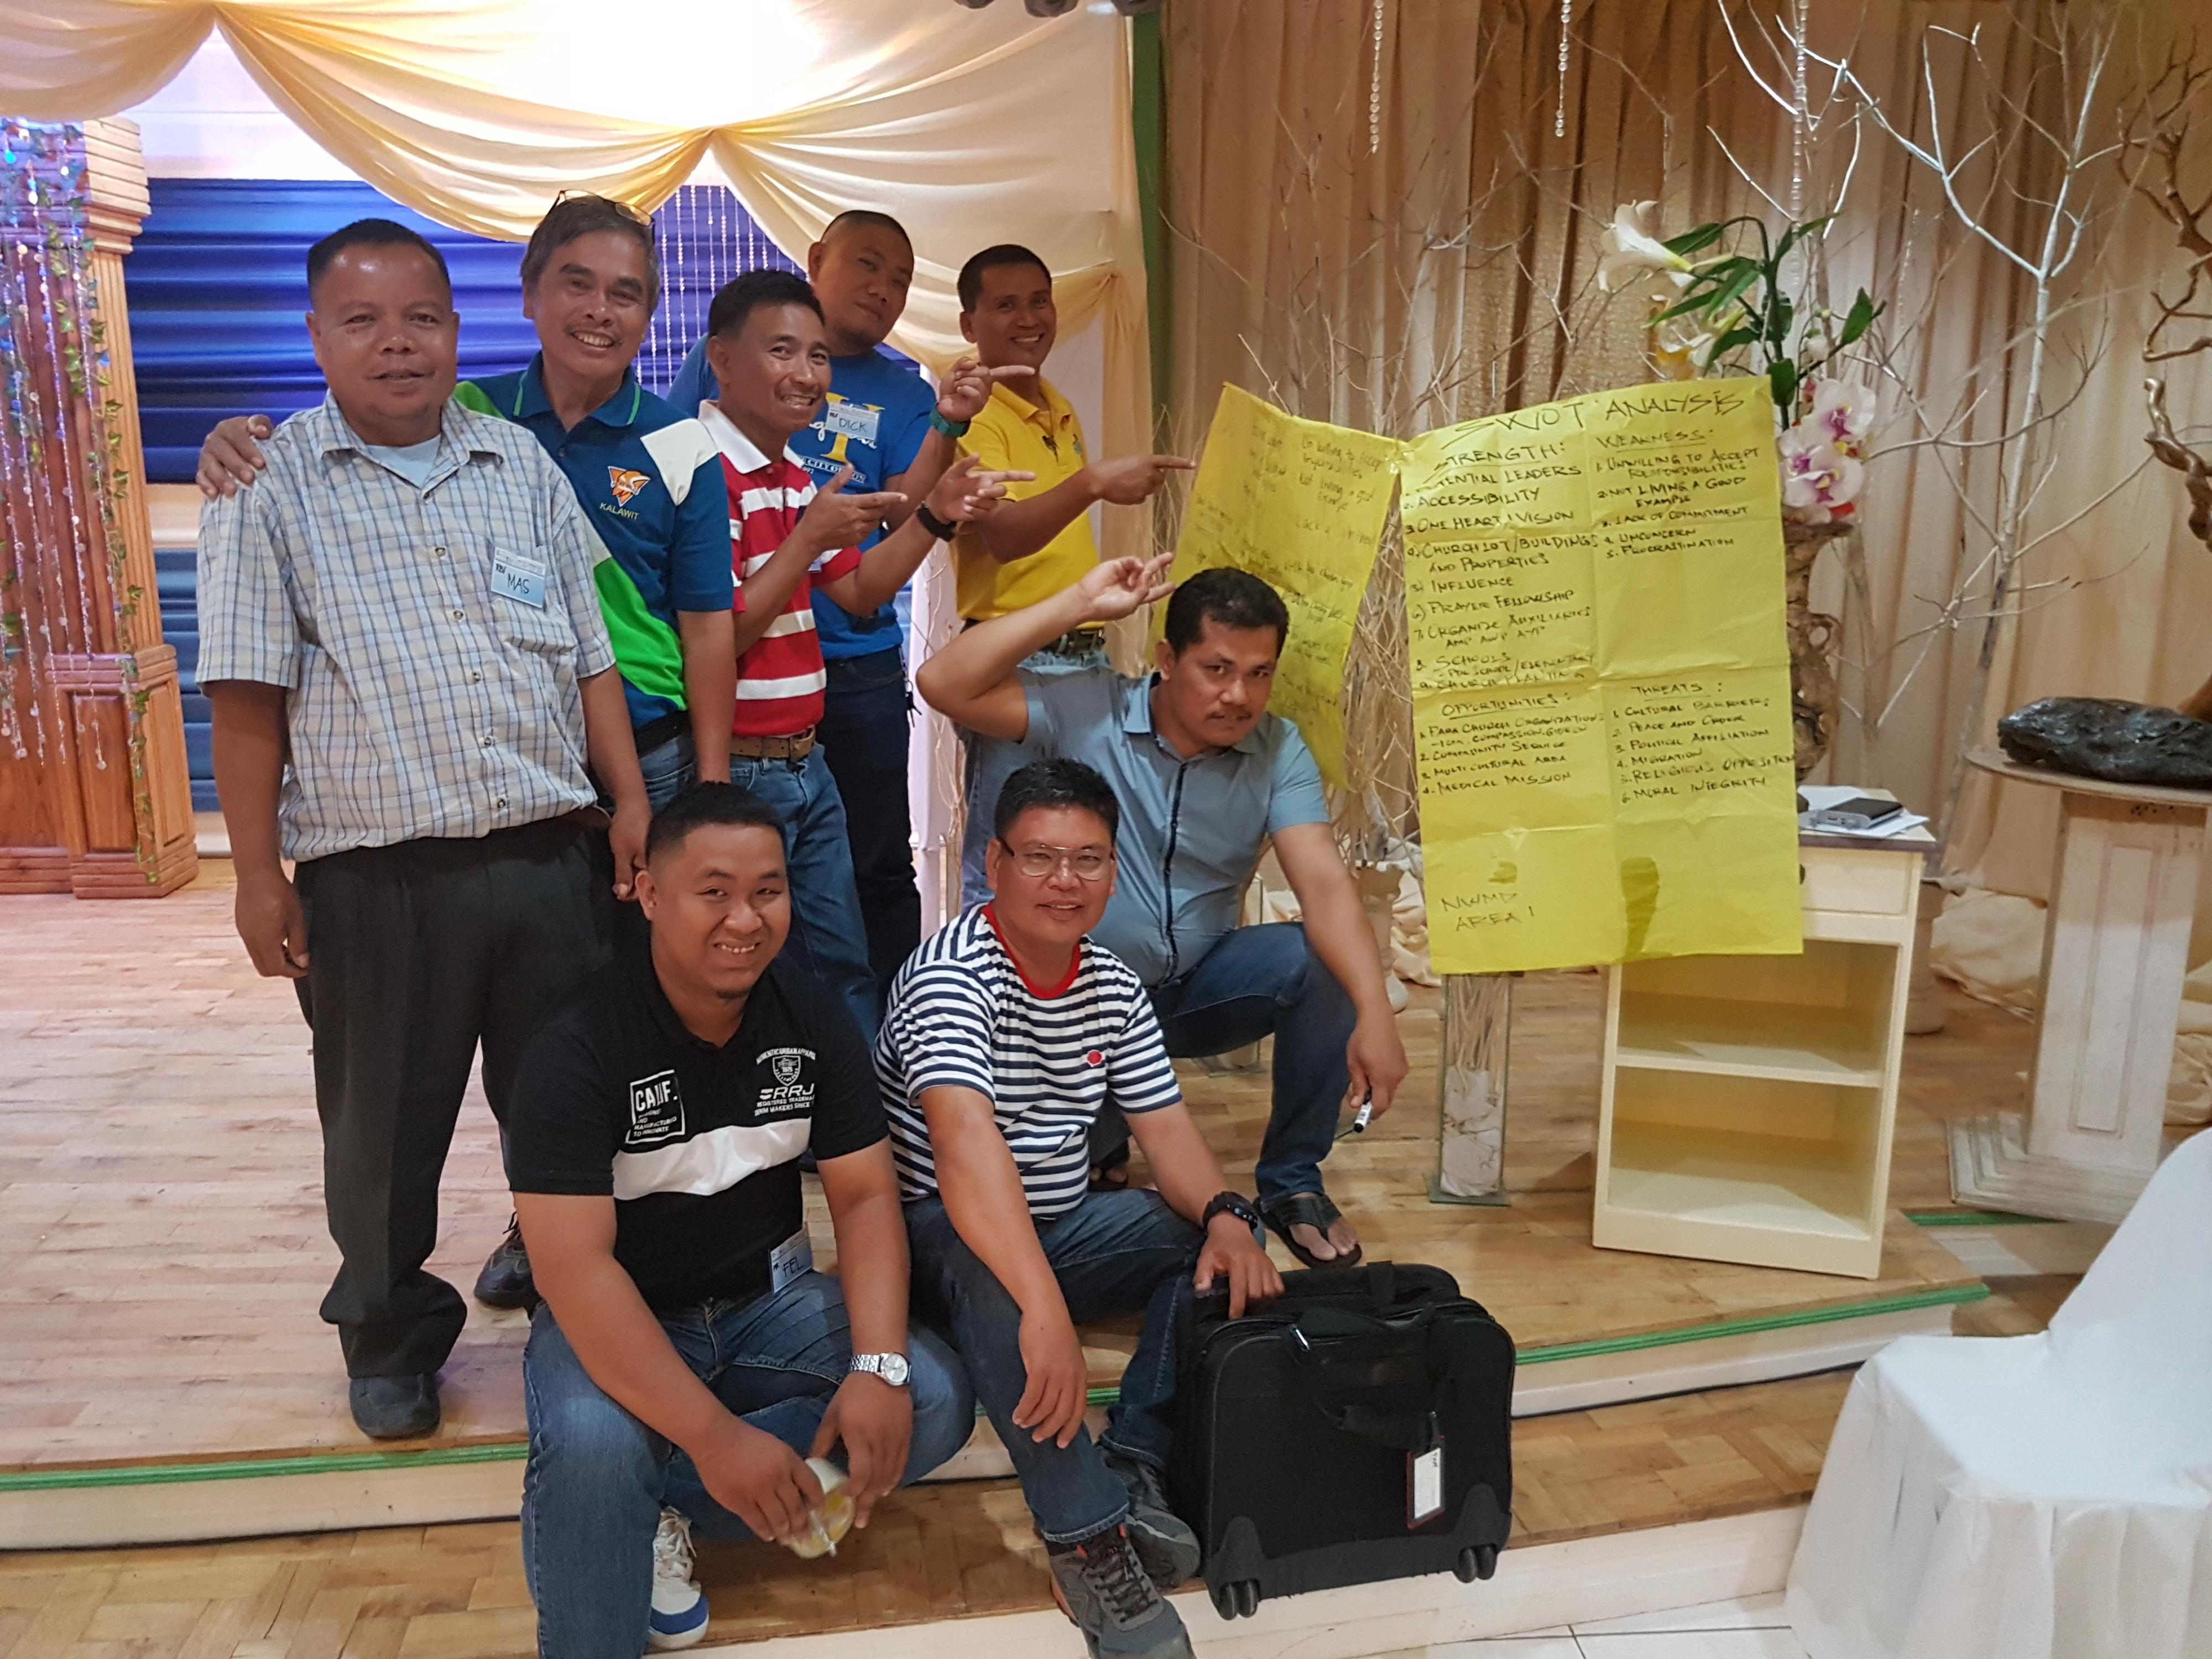 A group of training participants in the Philippines